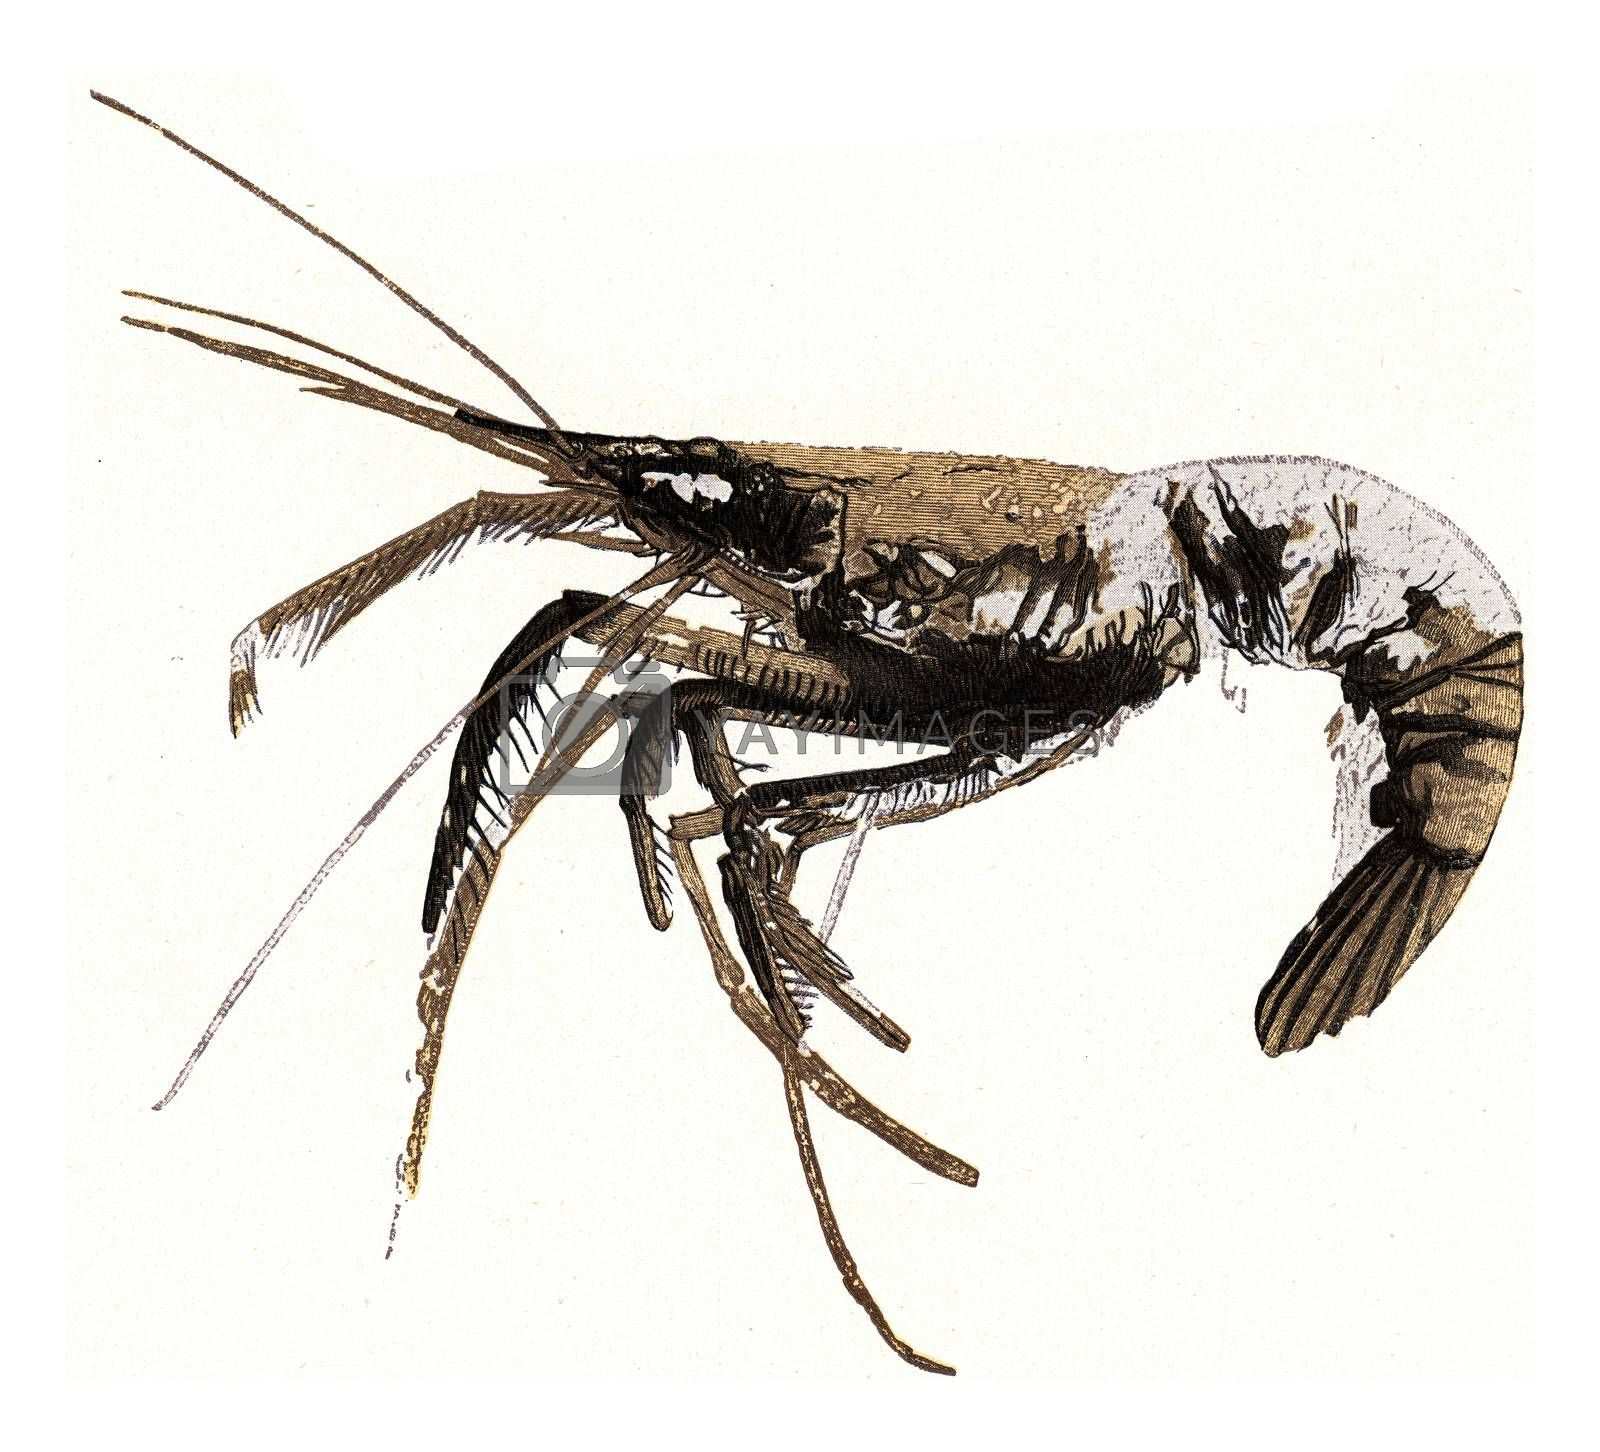 Royalty free image of Fossil crayfish, vintage engraving. by Morphart